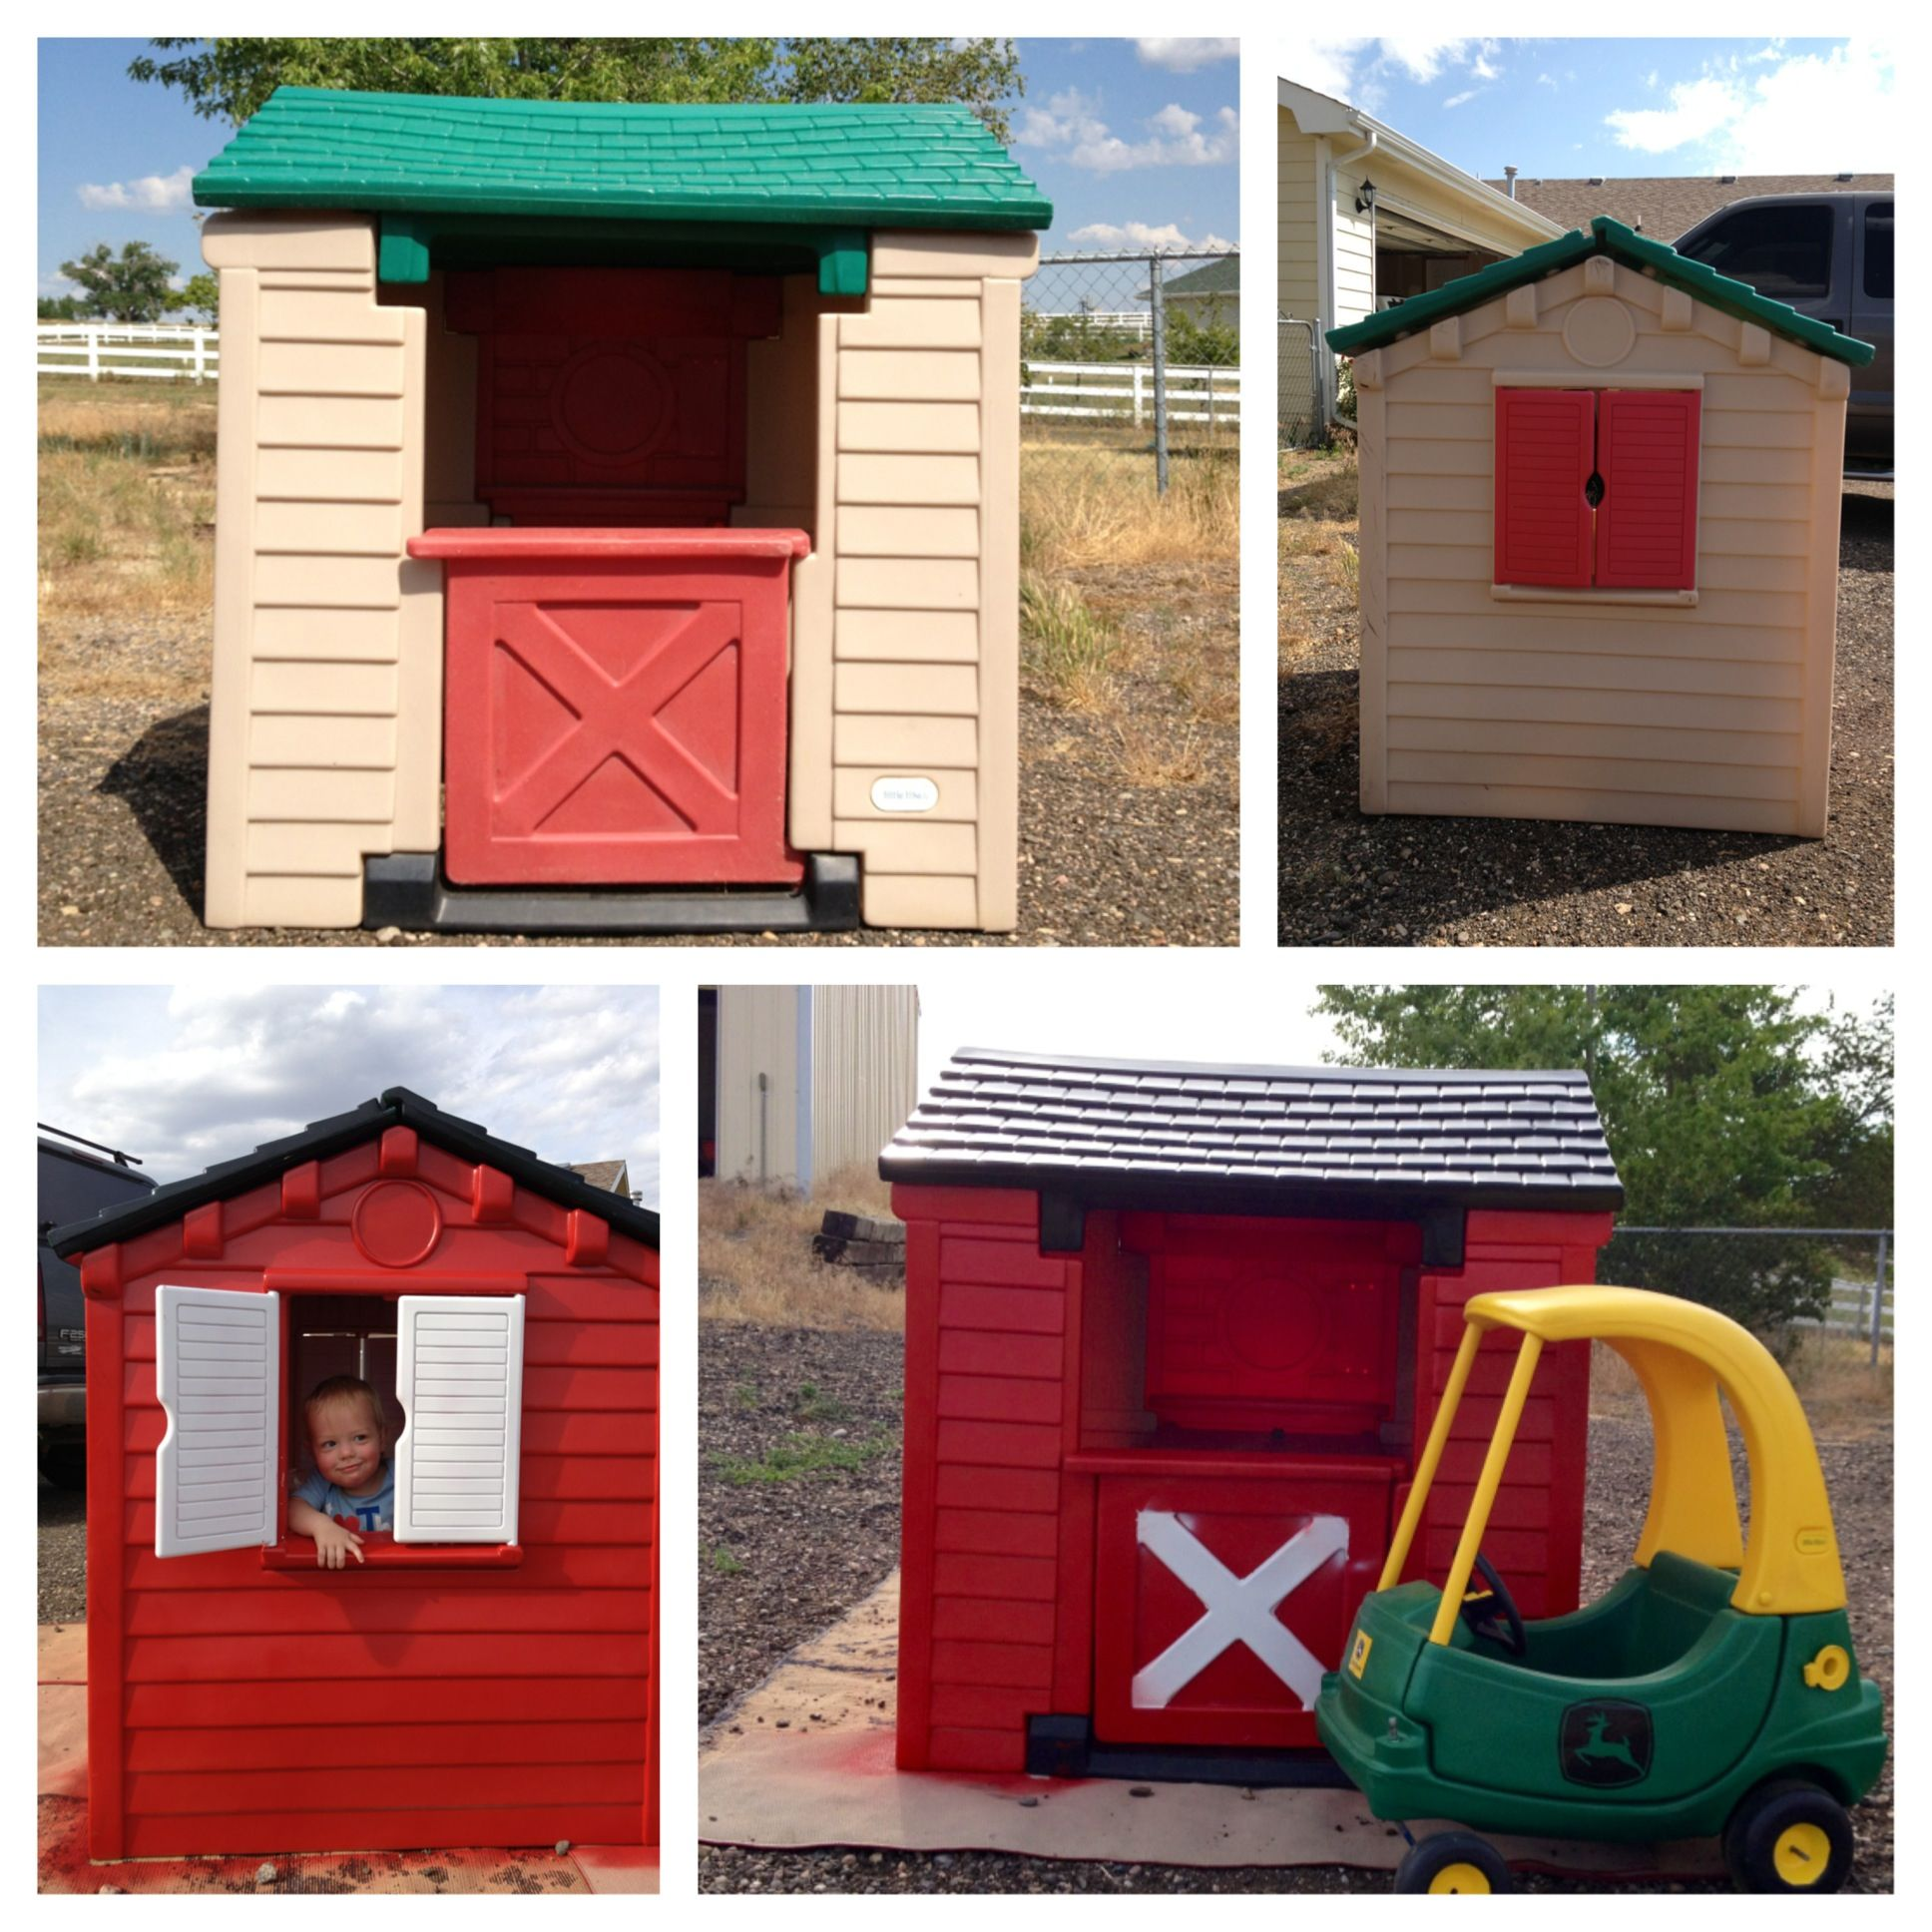 Little Tikes house makeover with a John Deere cozy coupe